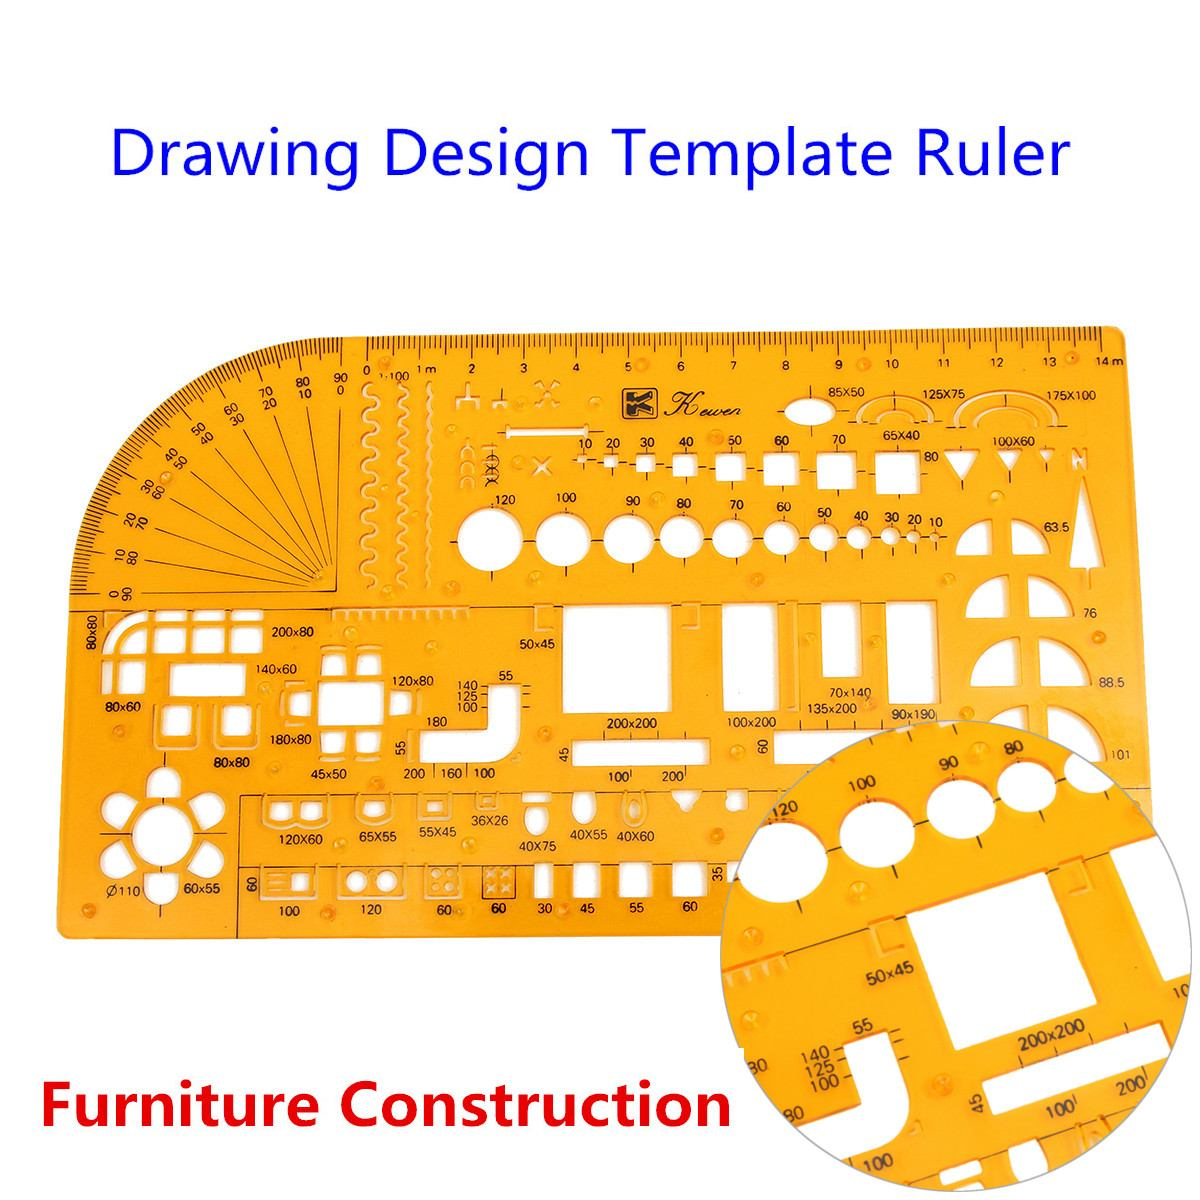 Professional  Furniture Construction Architect Drawing Template Ruler 1:100 Office & School Supplies Model Ruler Scale